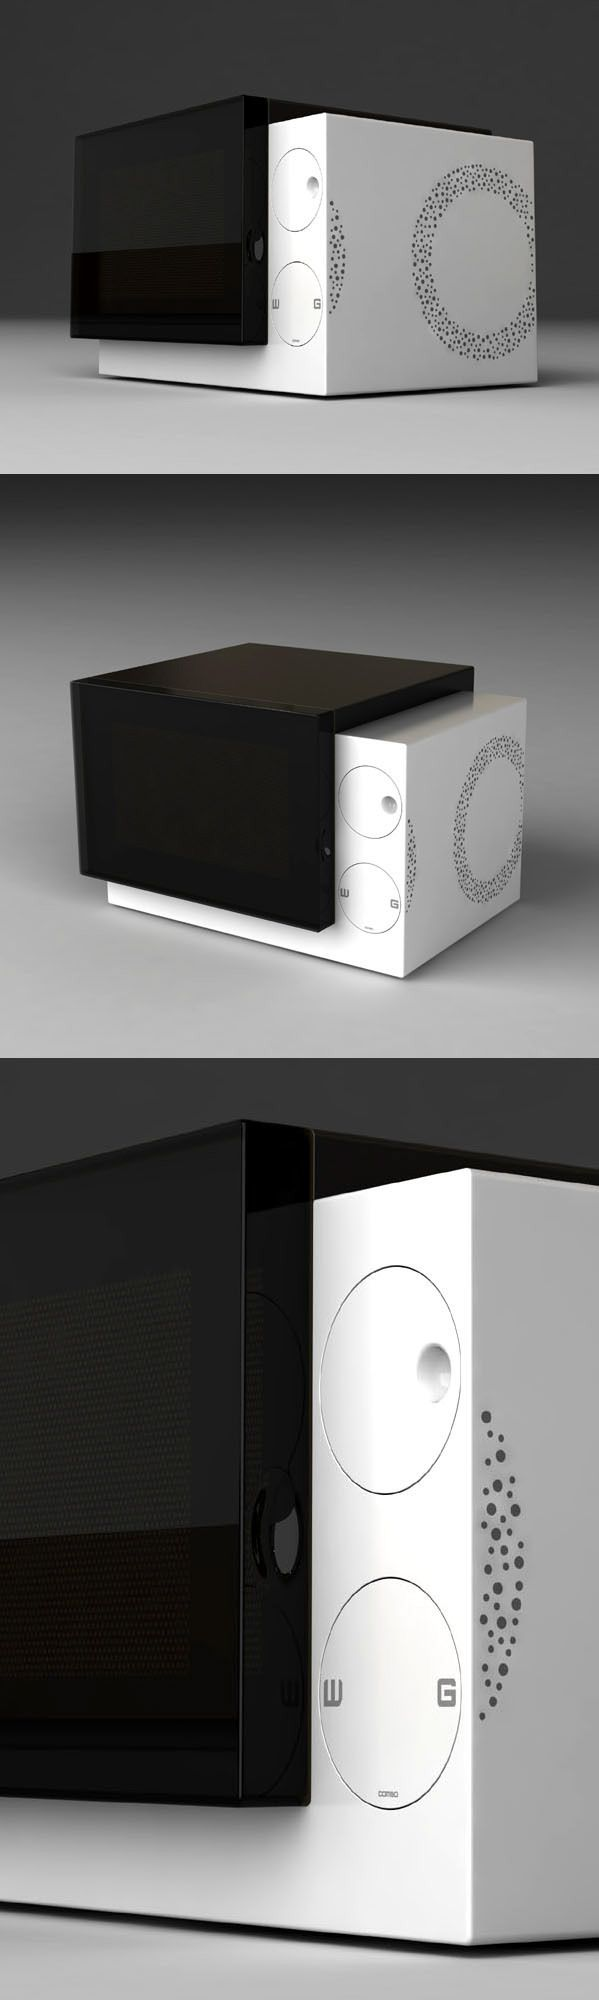 2009 Microwave oven design collection on Behance